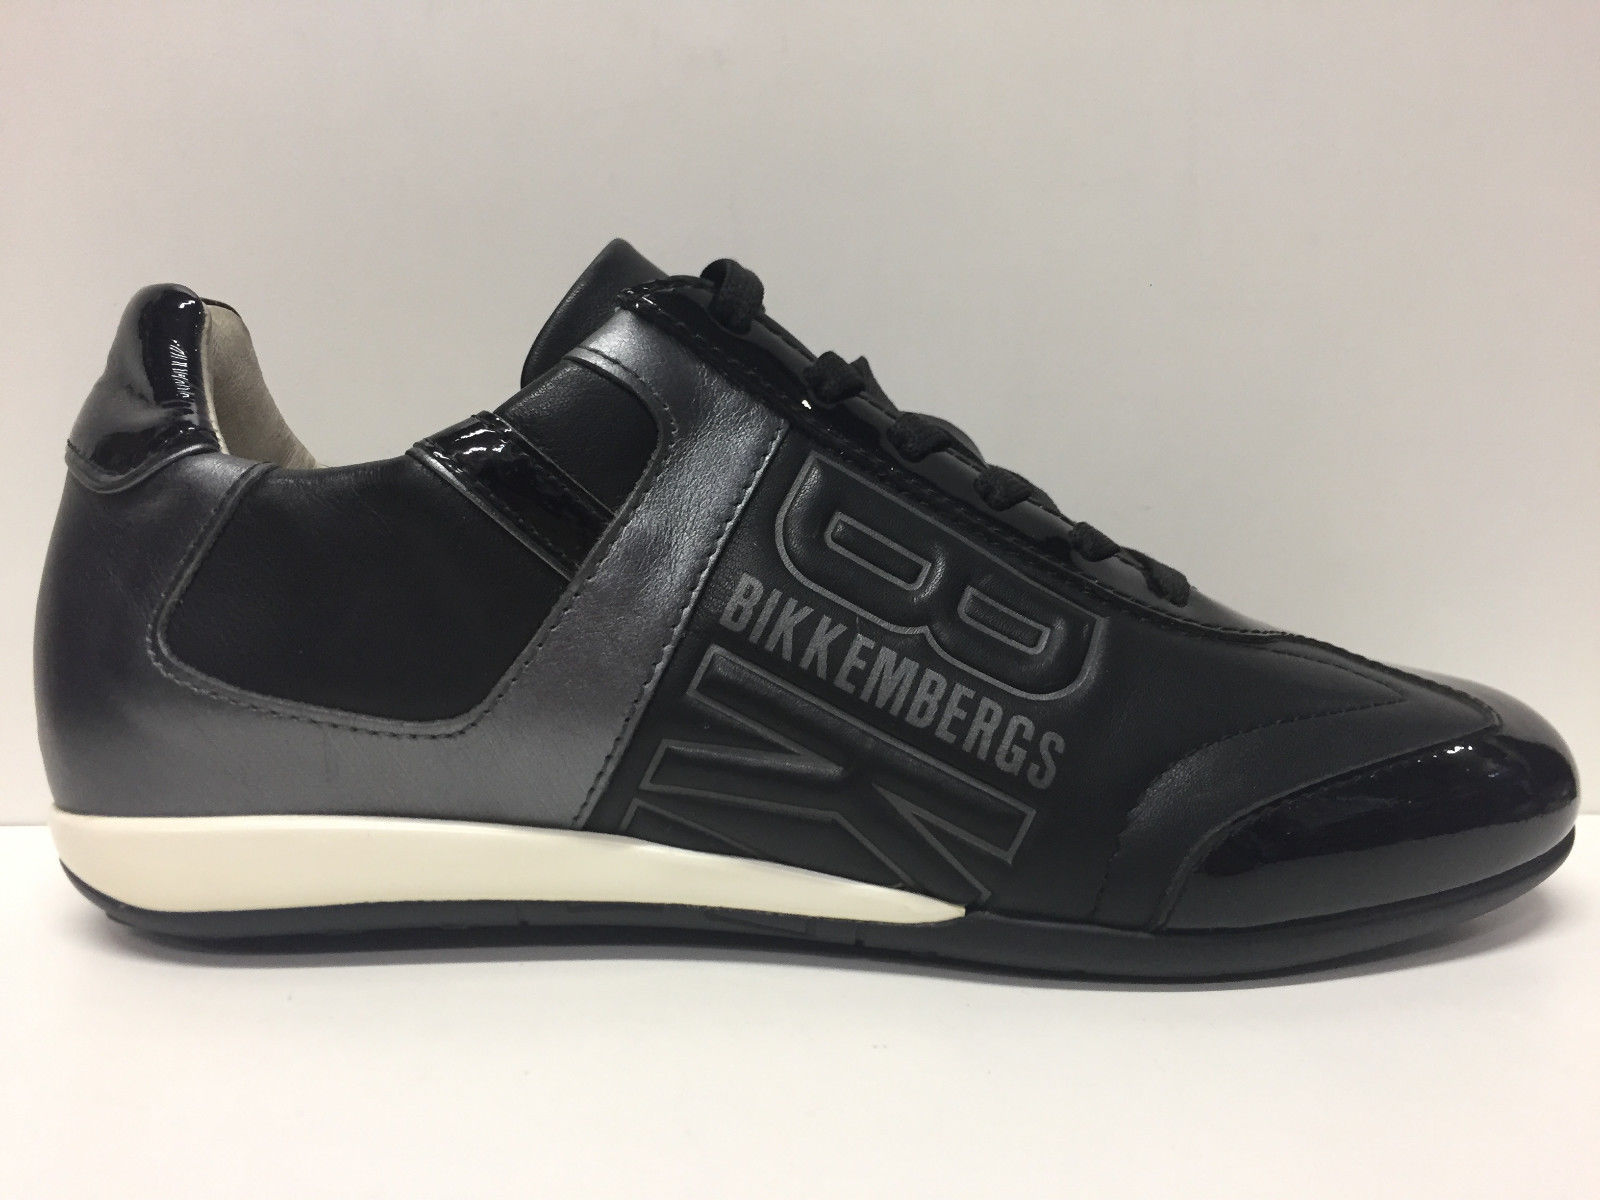 SCARPE SNEAKERS DONNA BIKKEMBERGS ORIGINALI BKE101322 PELLE SHOES LEATHER WOMAN